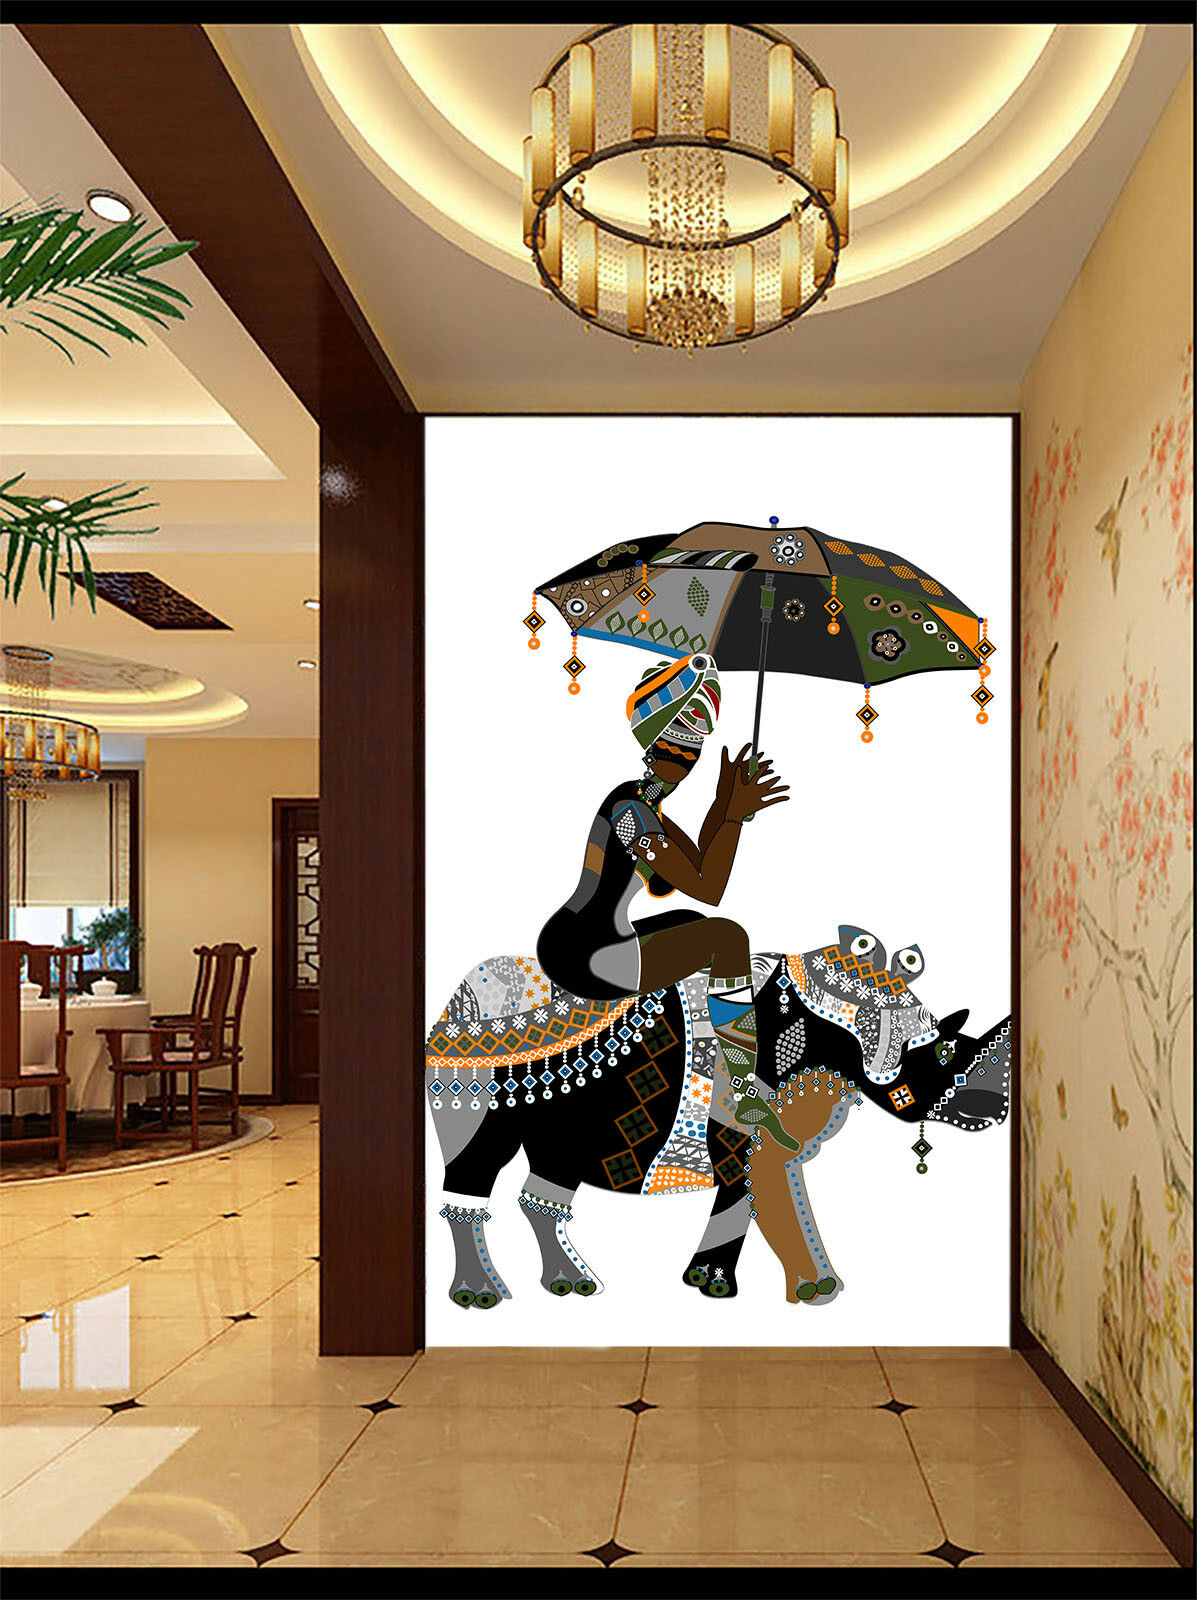 3D People And Animal  4 Wall Paper Wall Print Decal Wall Deco Indoor Mural Carly